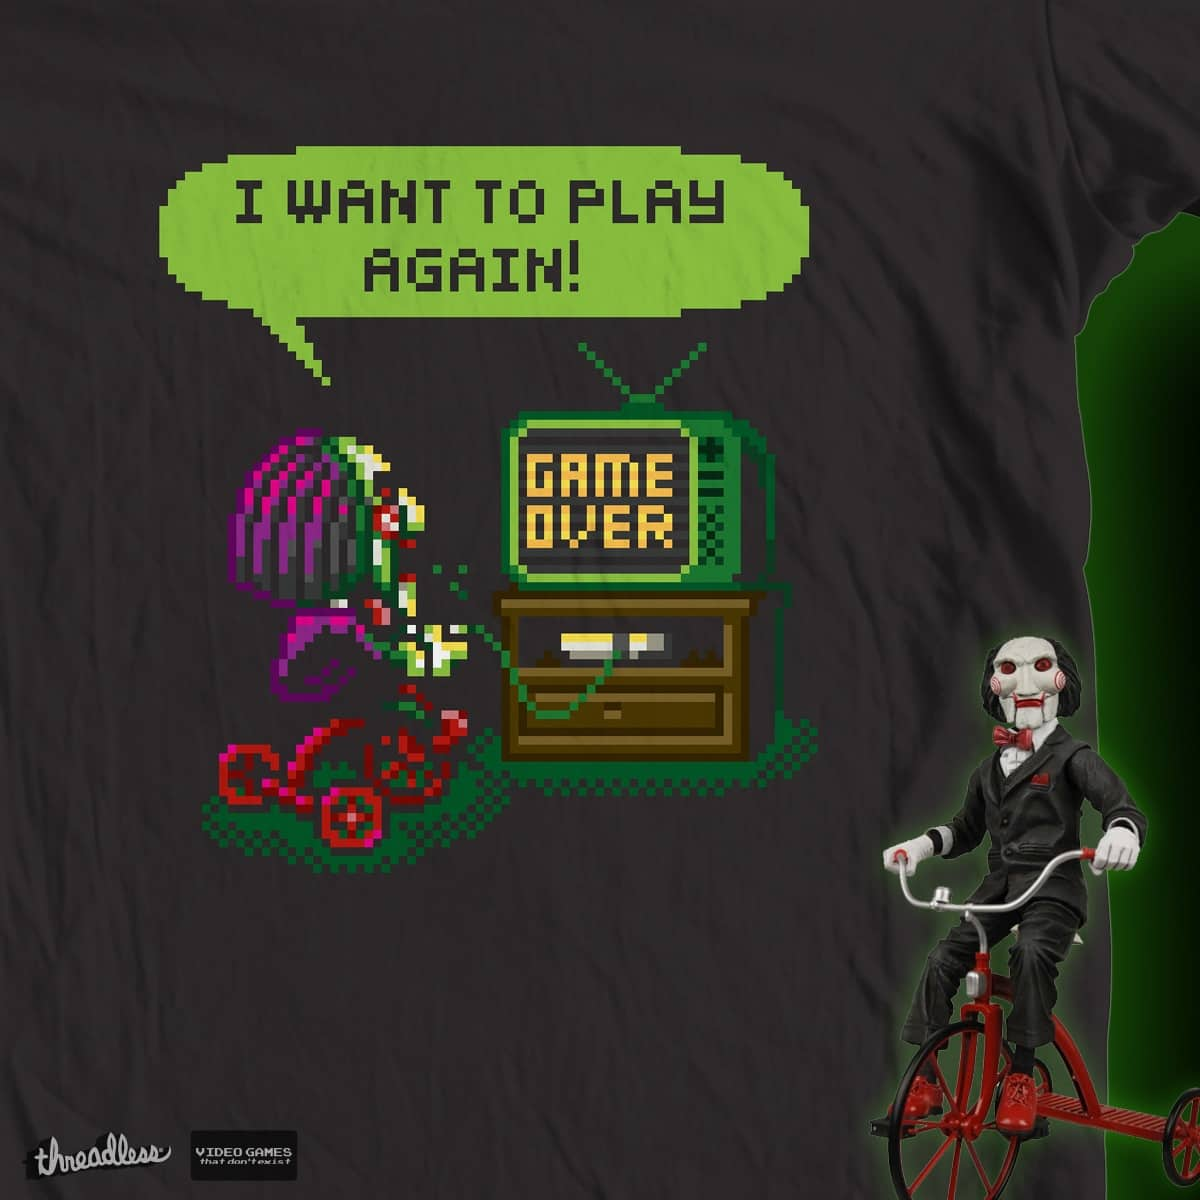 I want to play again! by smallview on Threadless